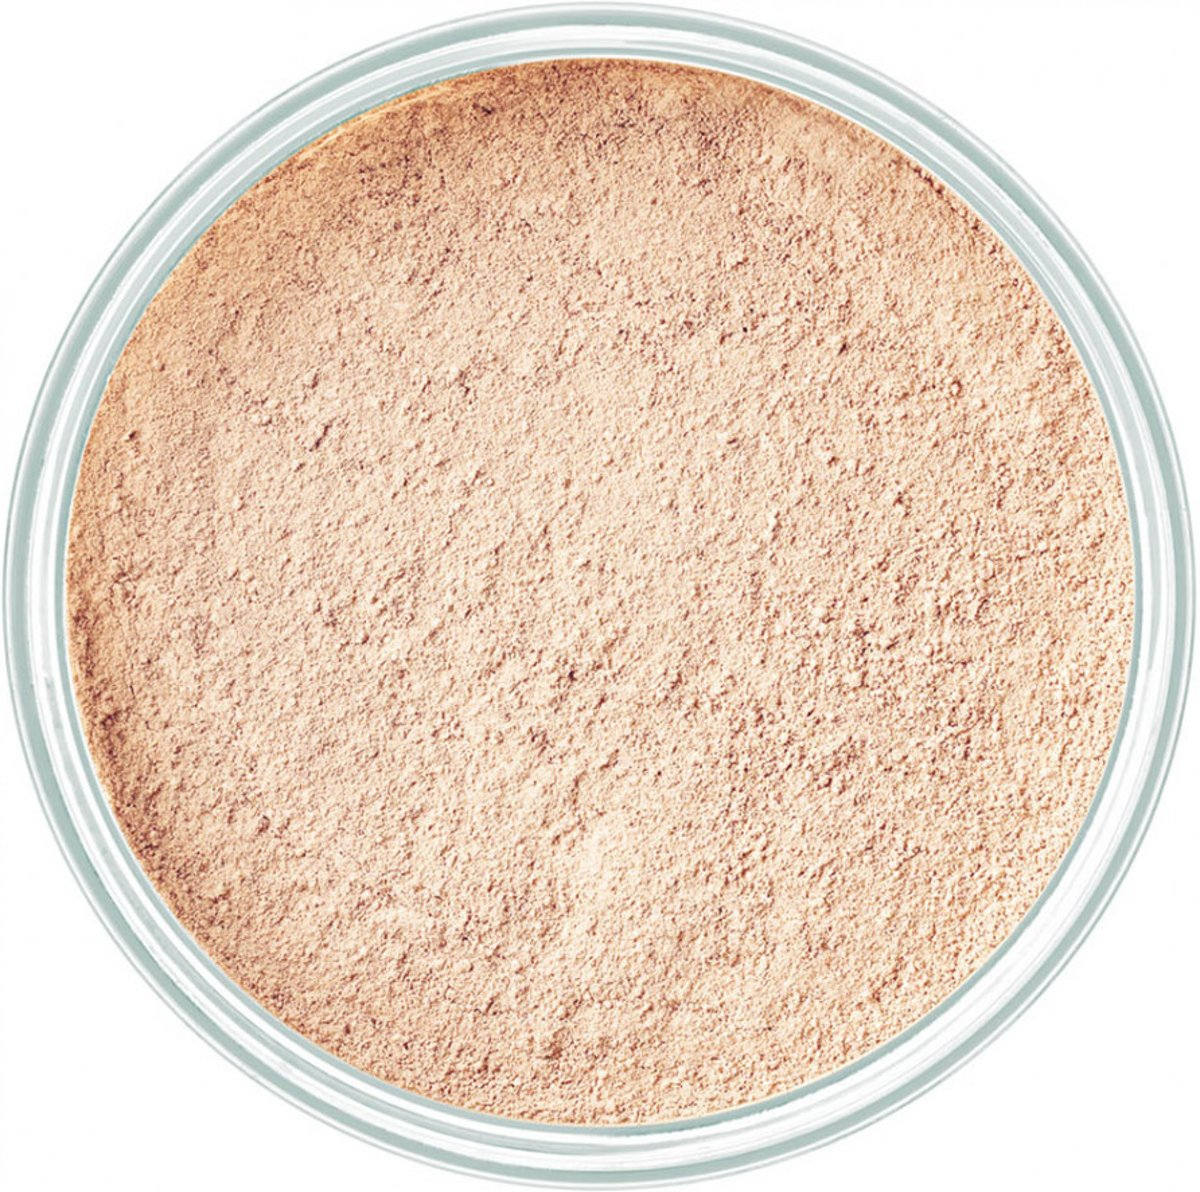 Artdeco Mineral Powder Foundation - Cool 3 Soft Ivory